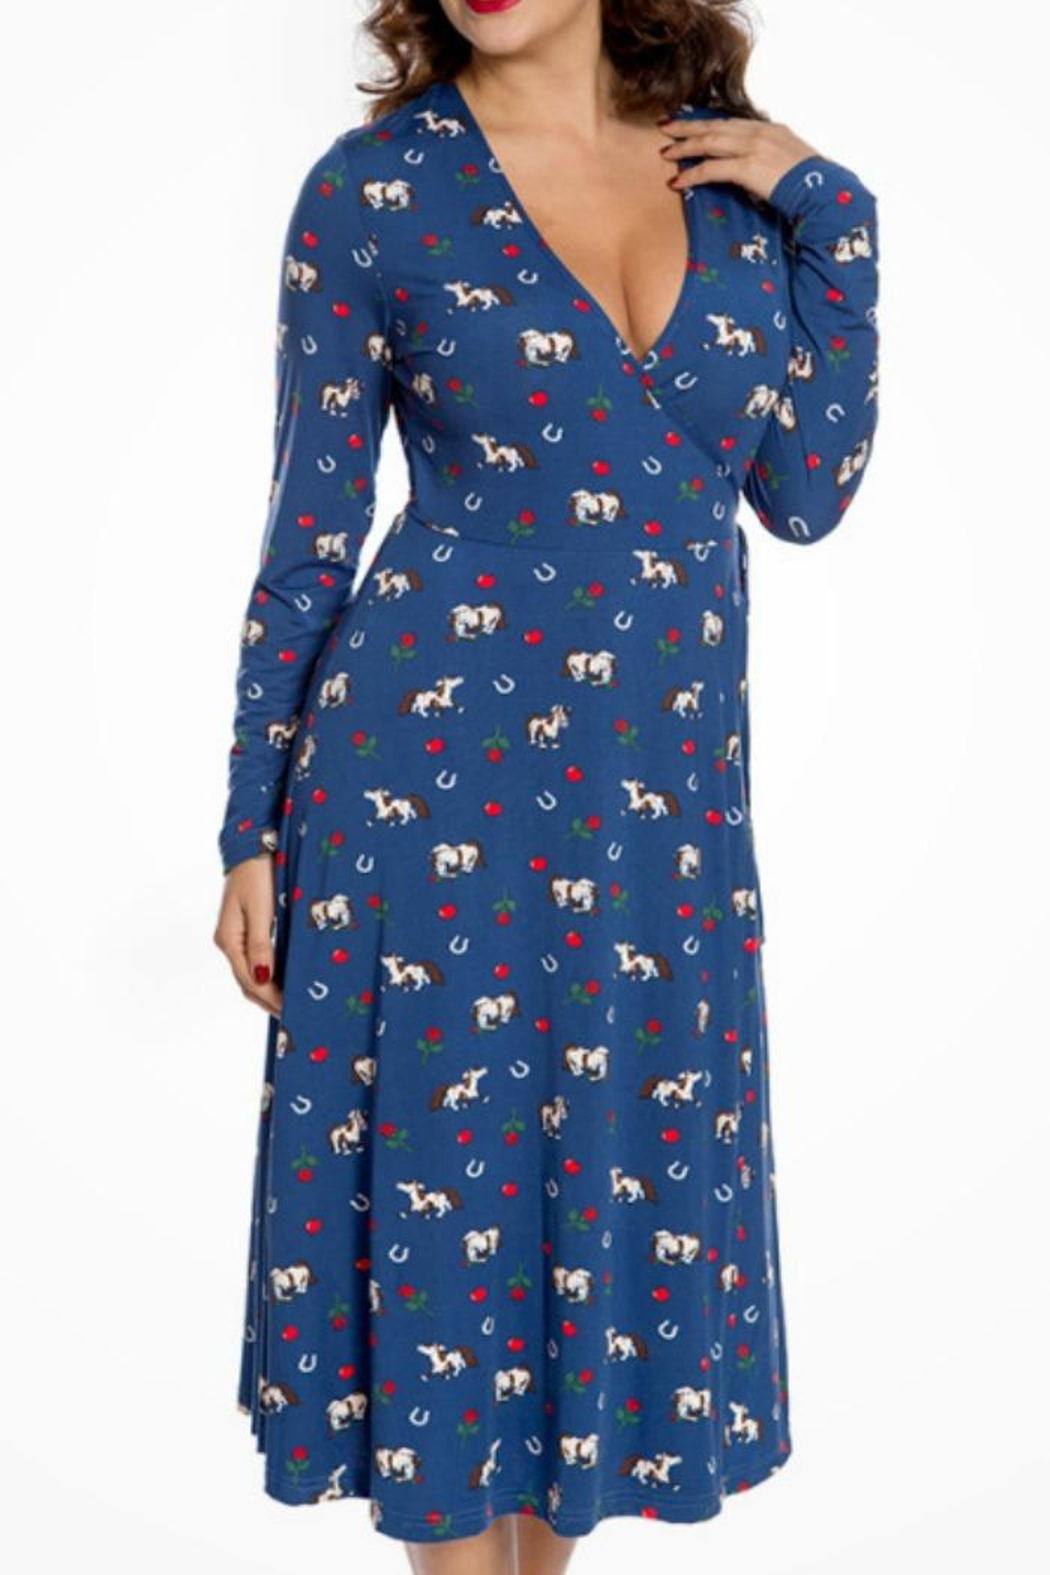 Lindy Bop Lucky Horse Dress - Front Cropped Image